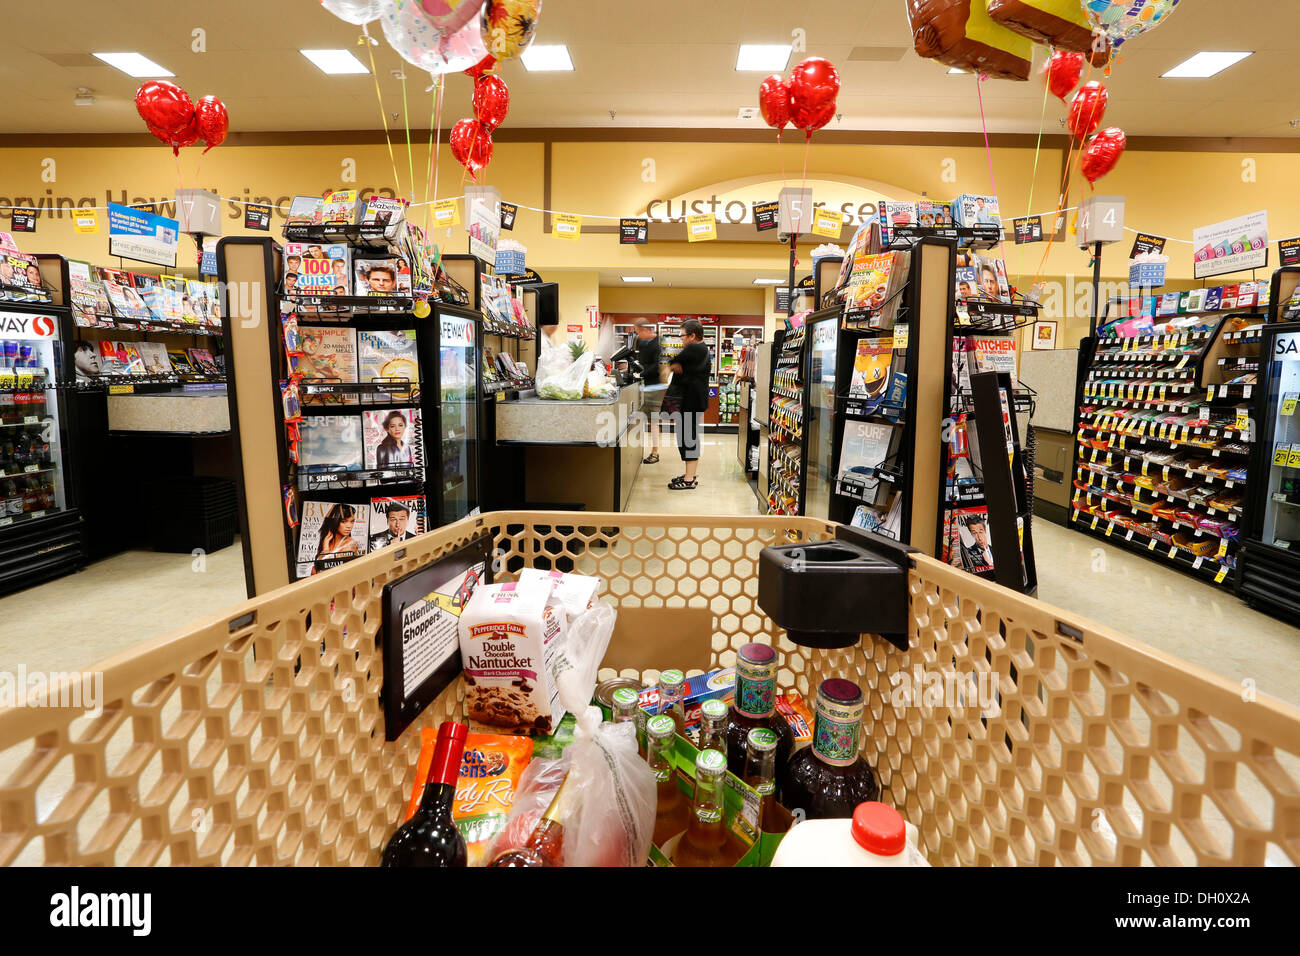 On the way to the checkout, shopping at the supermarket, USA - Stock Image